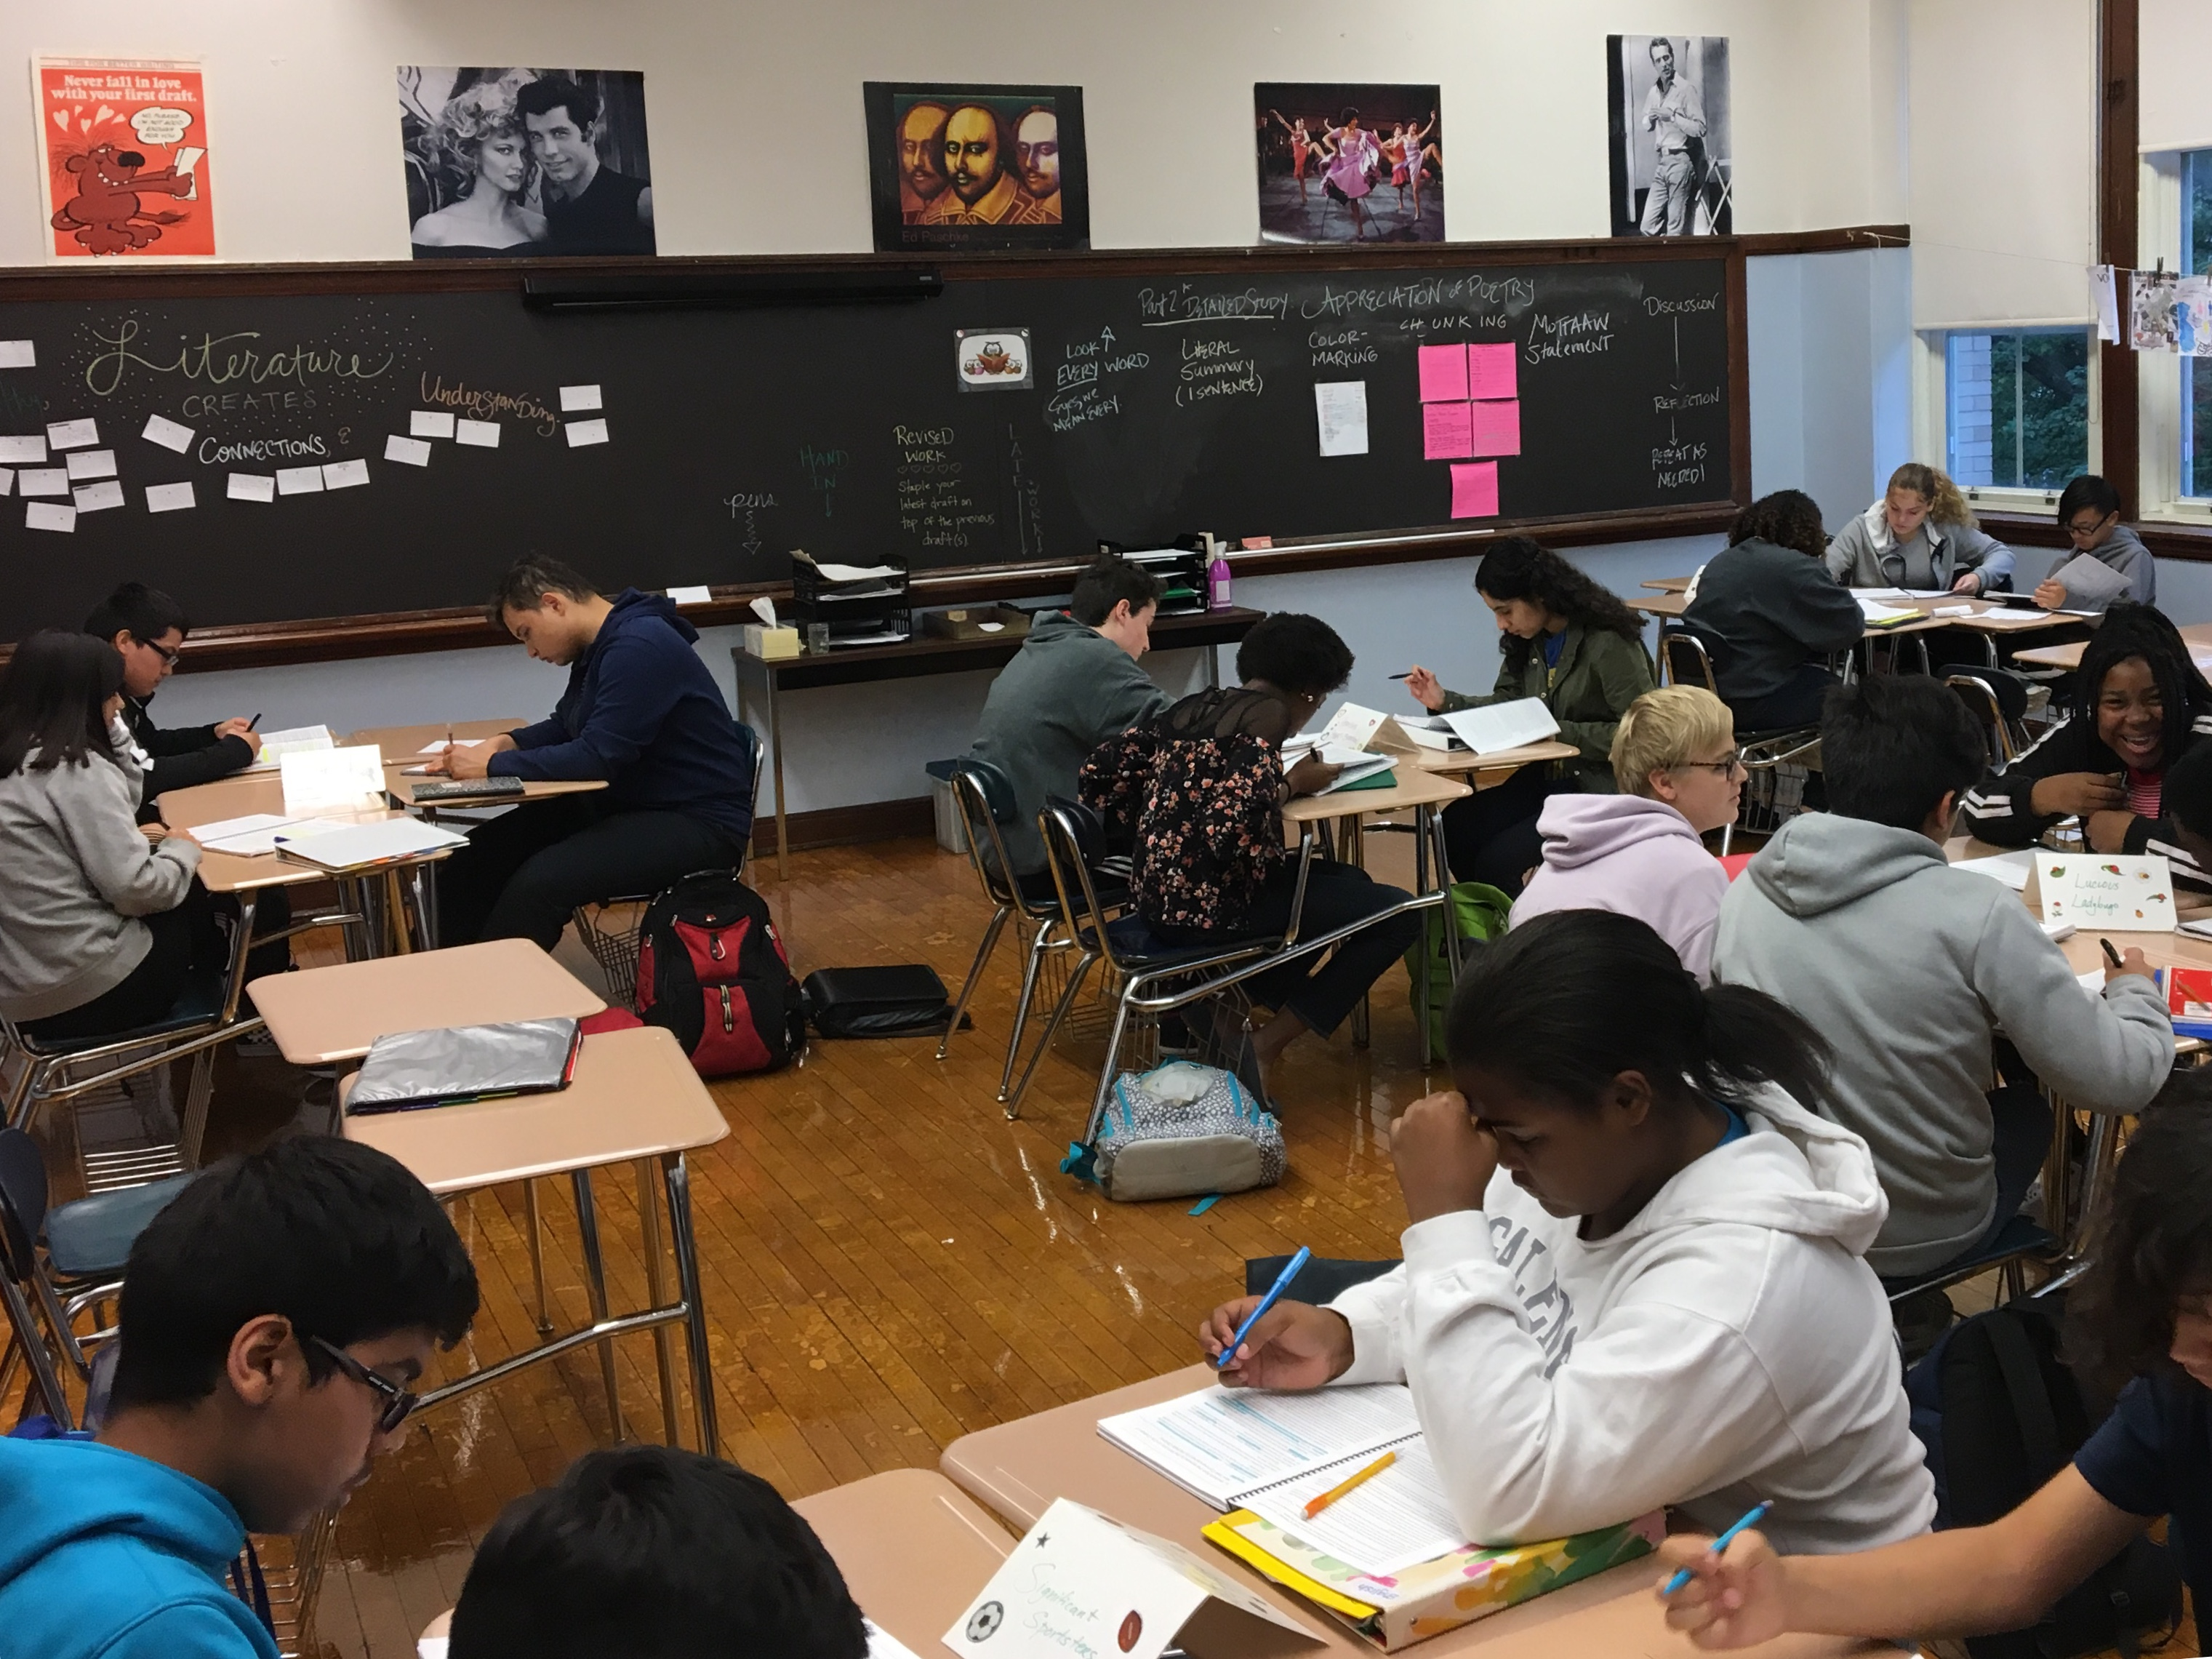 An International Baccalaureate class at Senn High School in Edgewater on the North Side of Chicago.